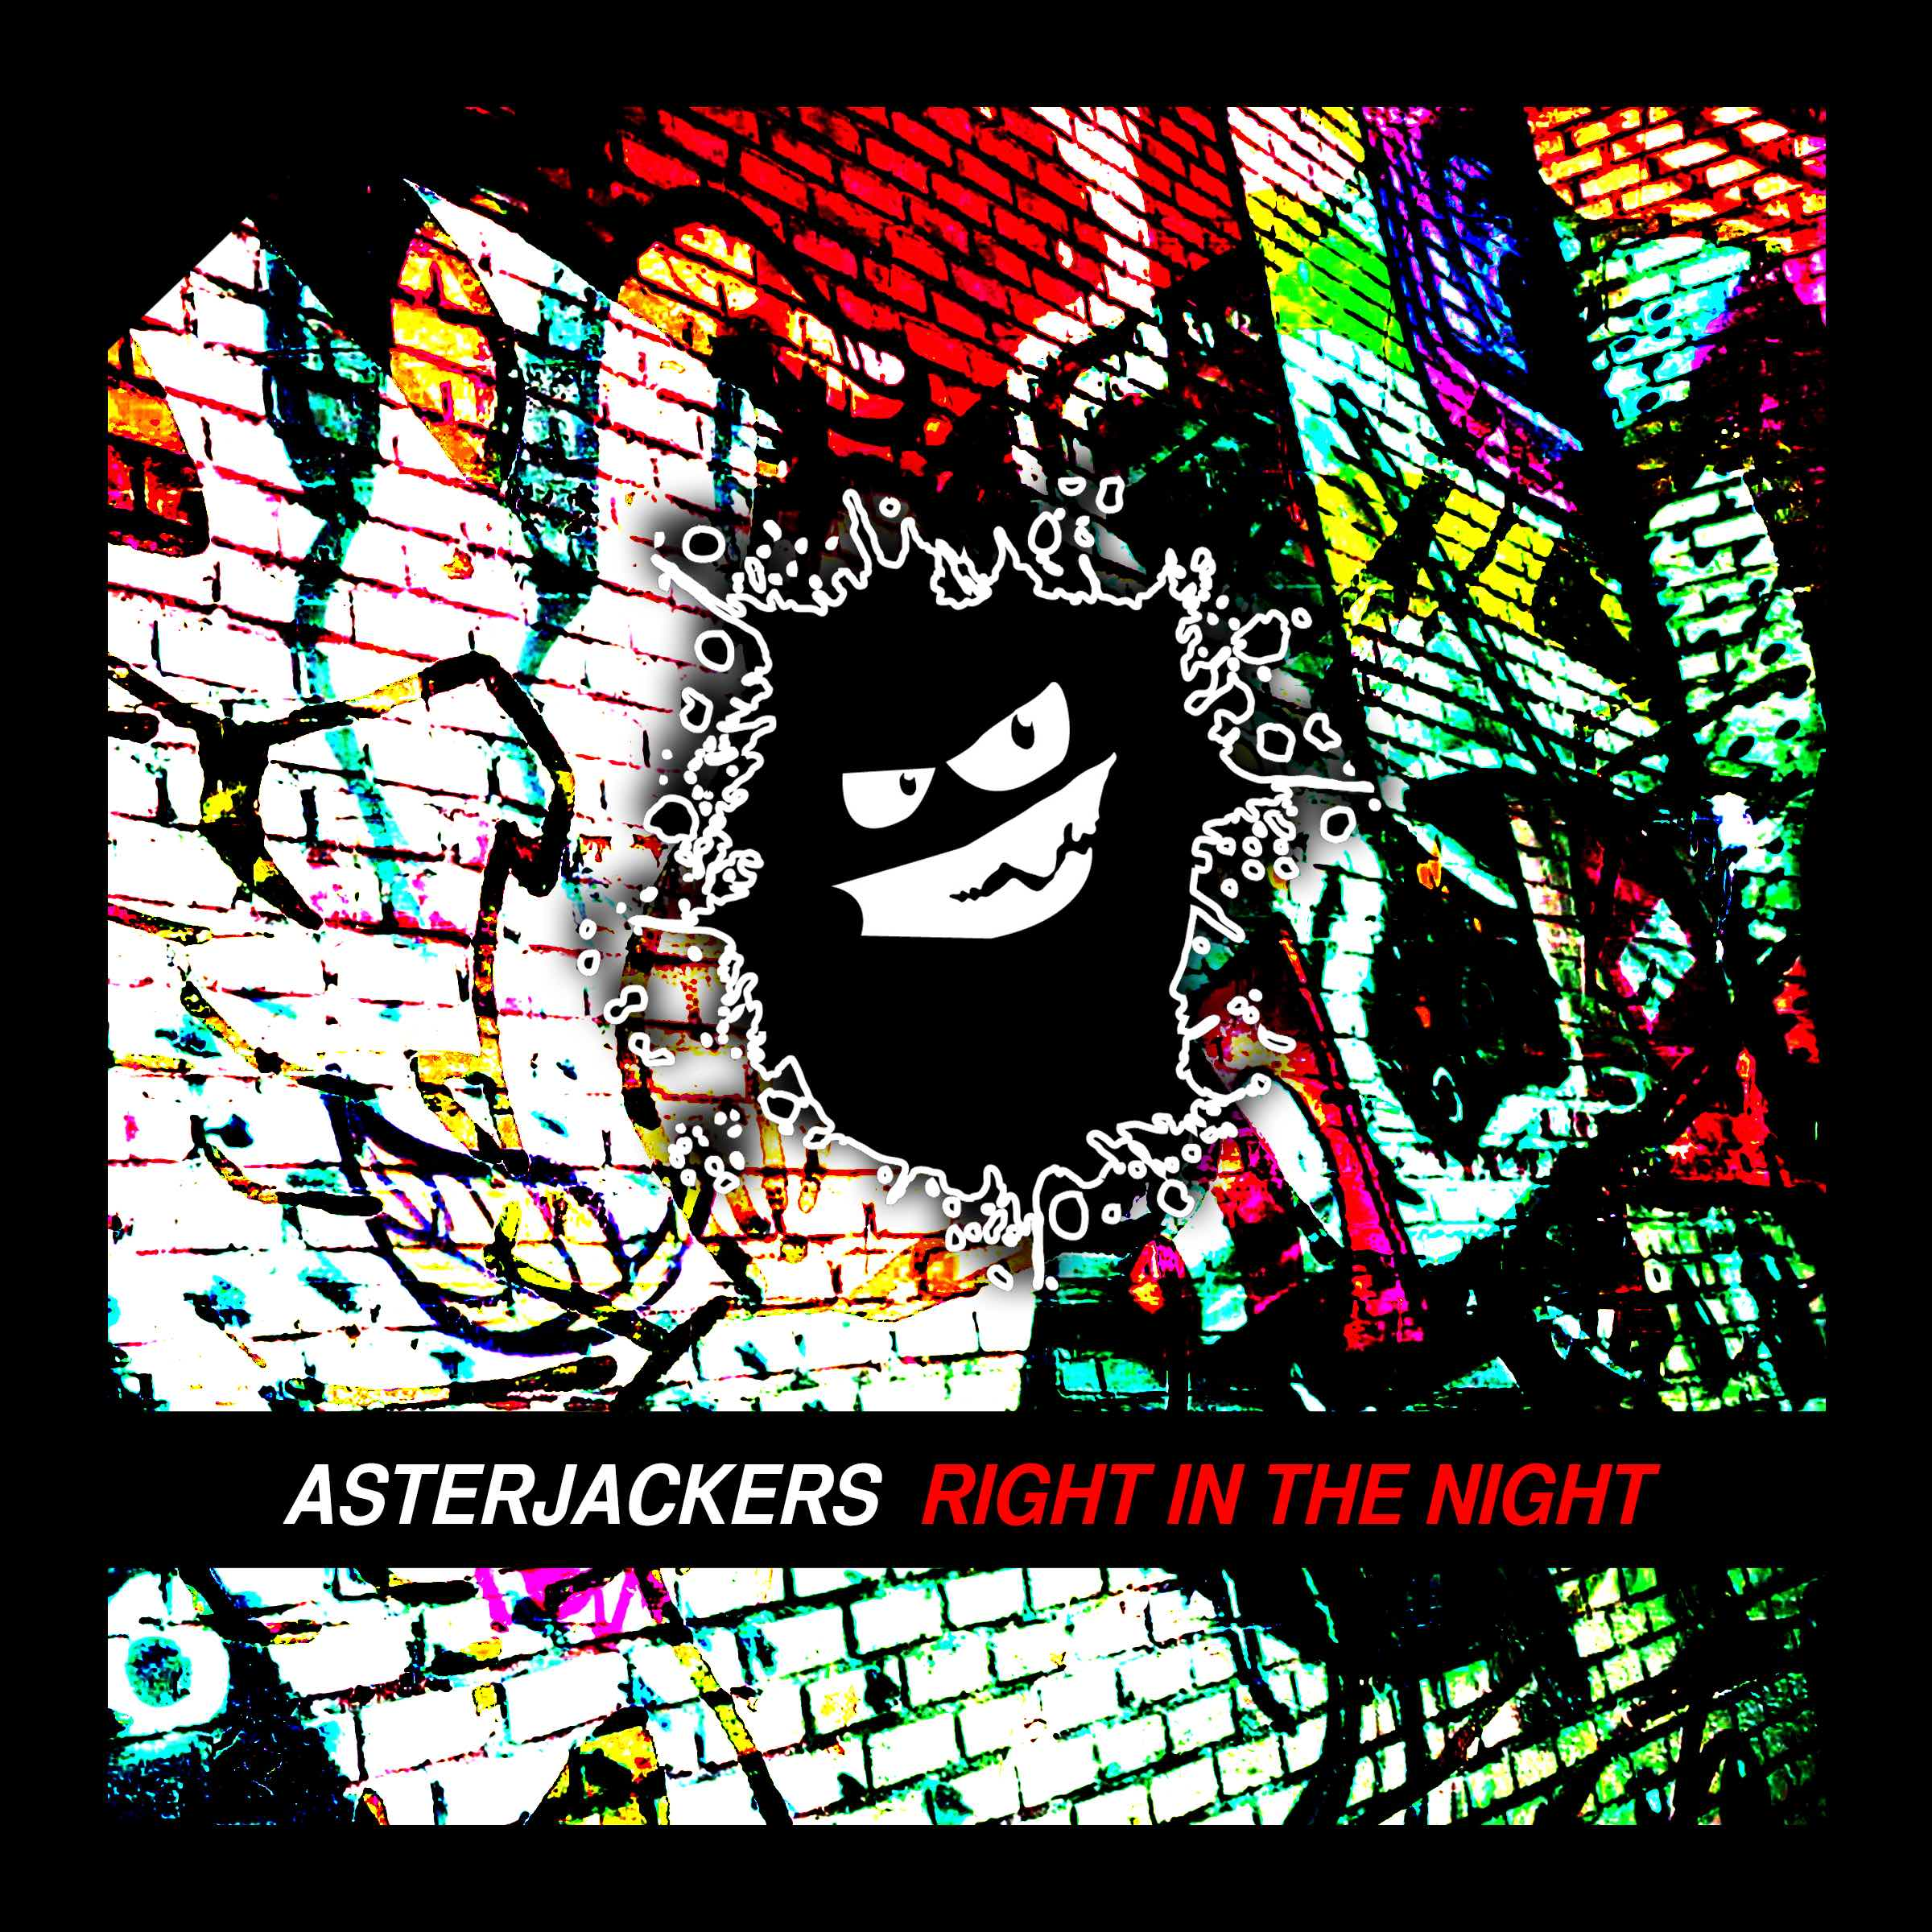 asterjackers_-_right_in_the_night.jpg